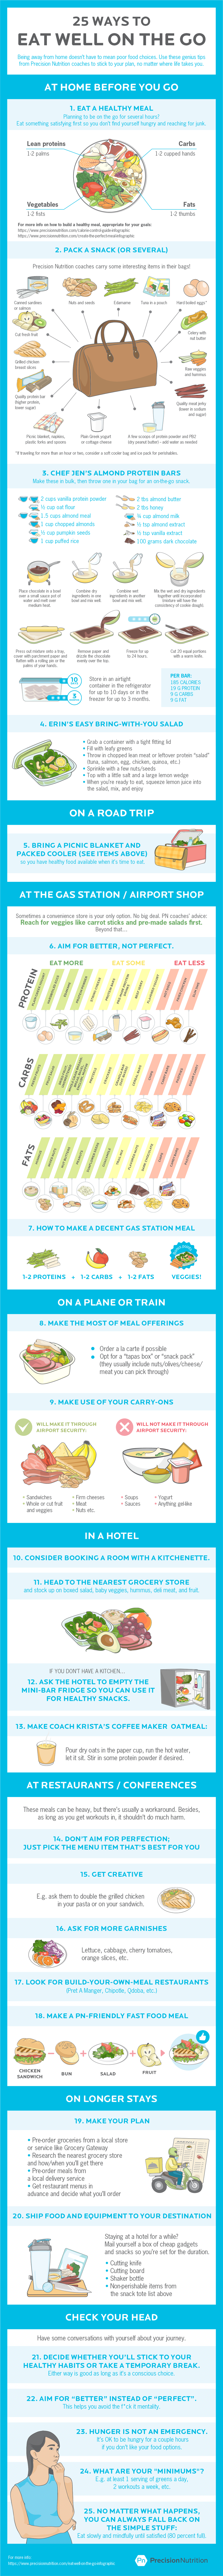 precision-nutrition-way-to-eat-well-on-the-go-infographic.png